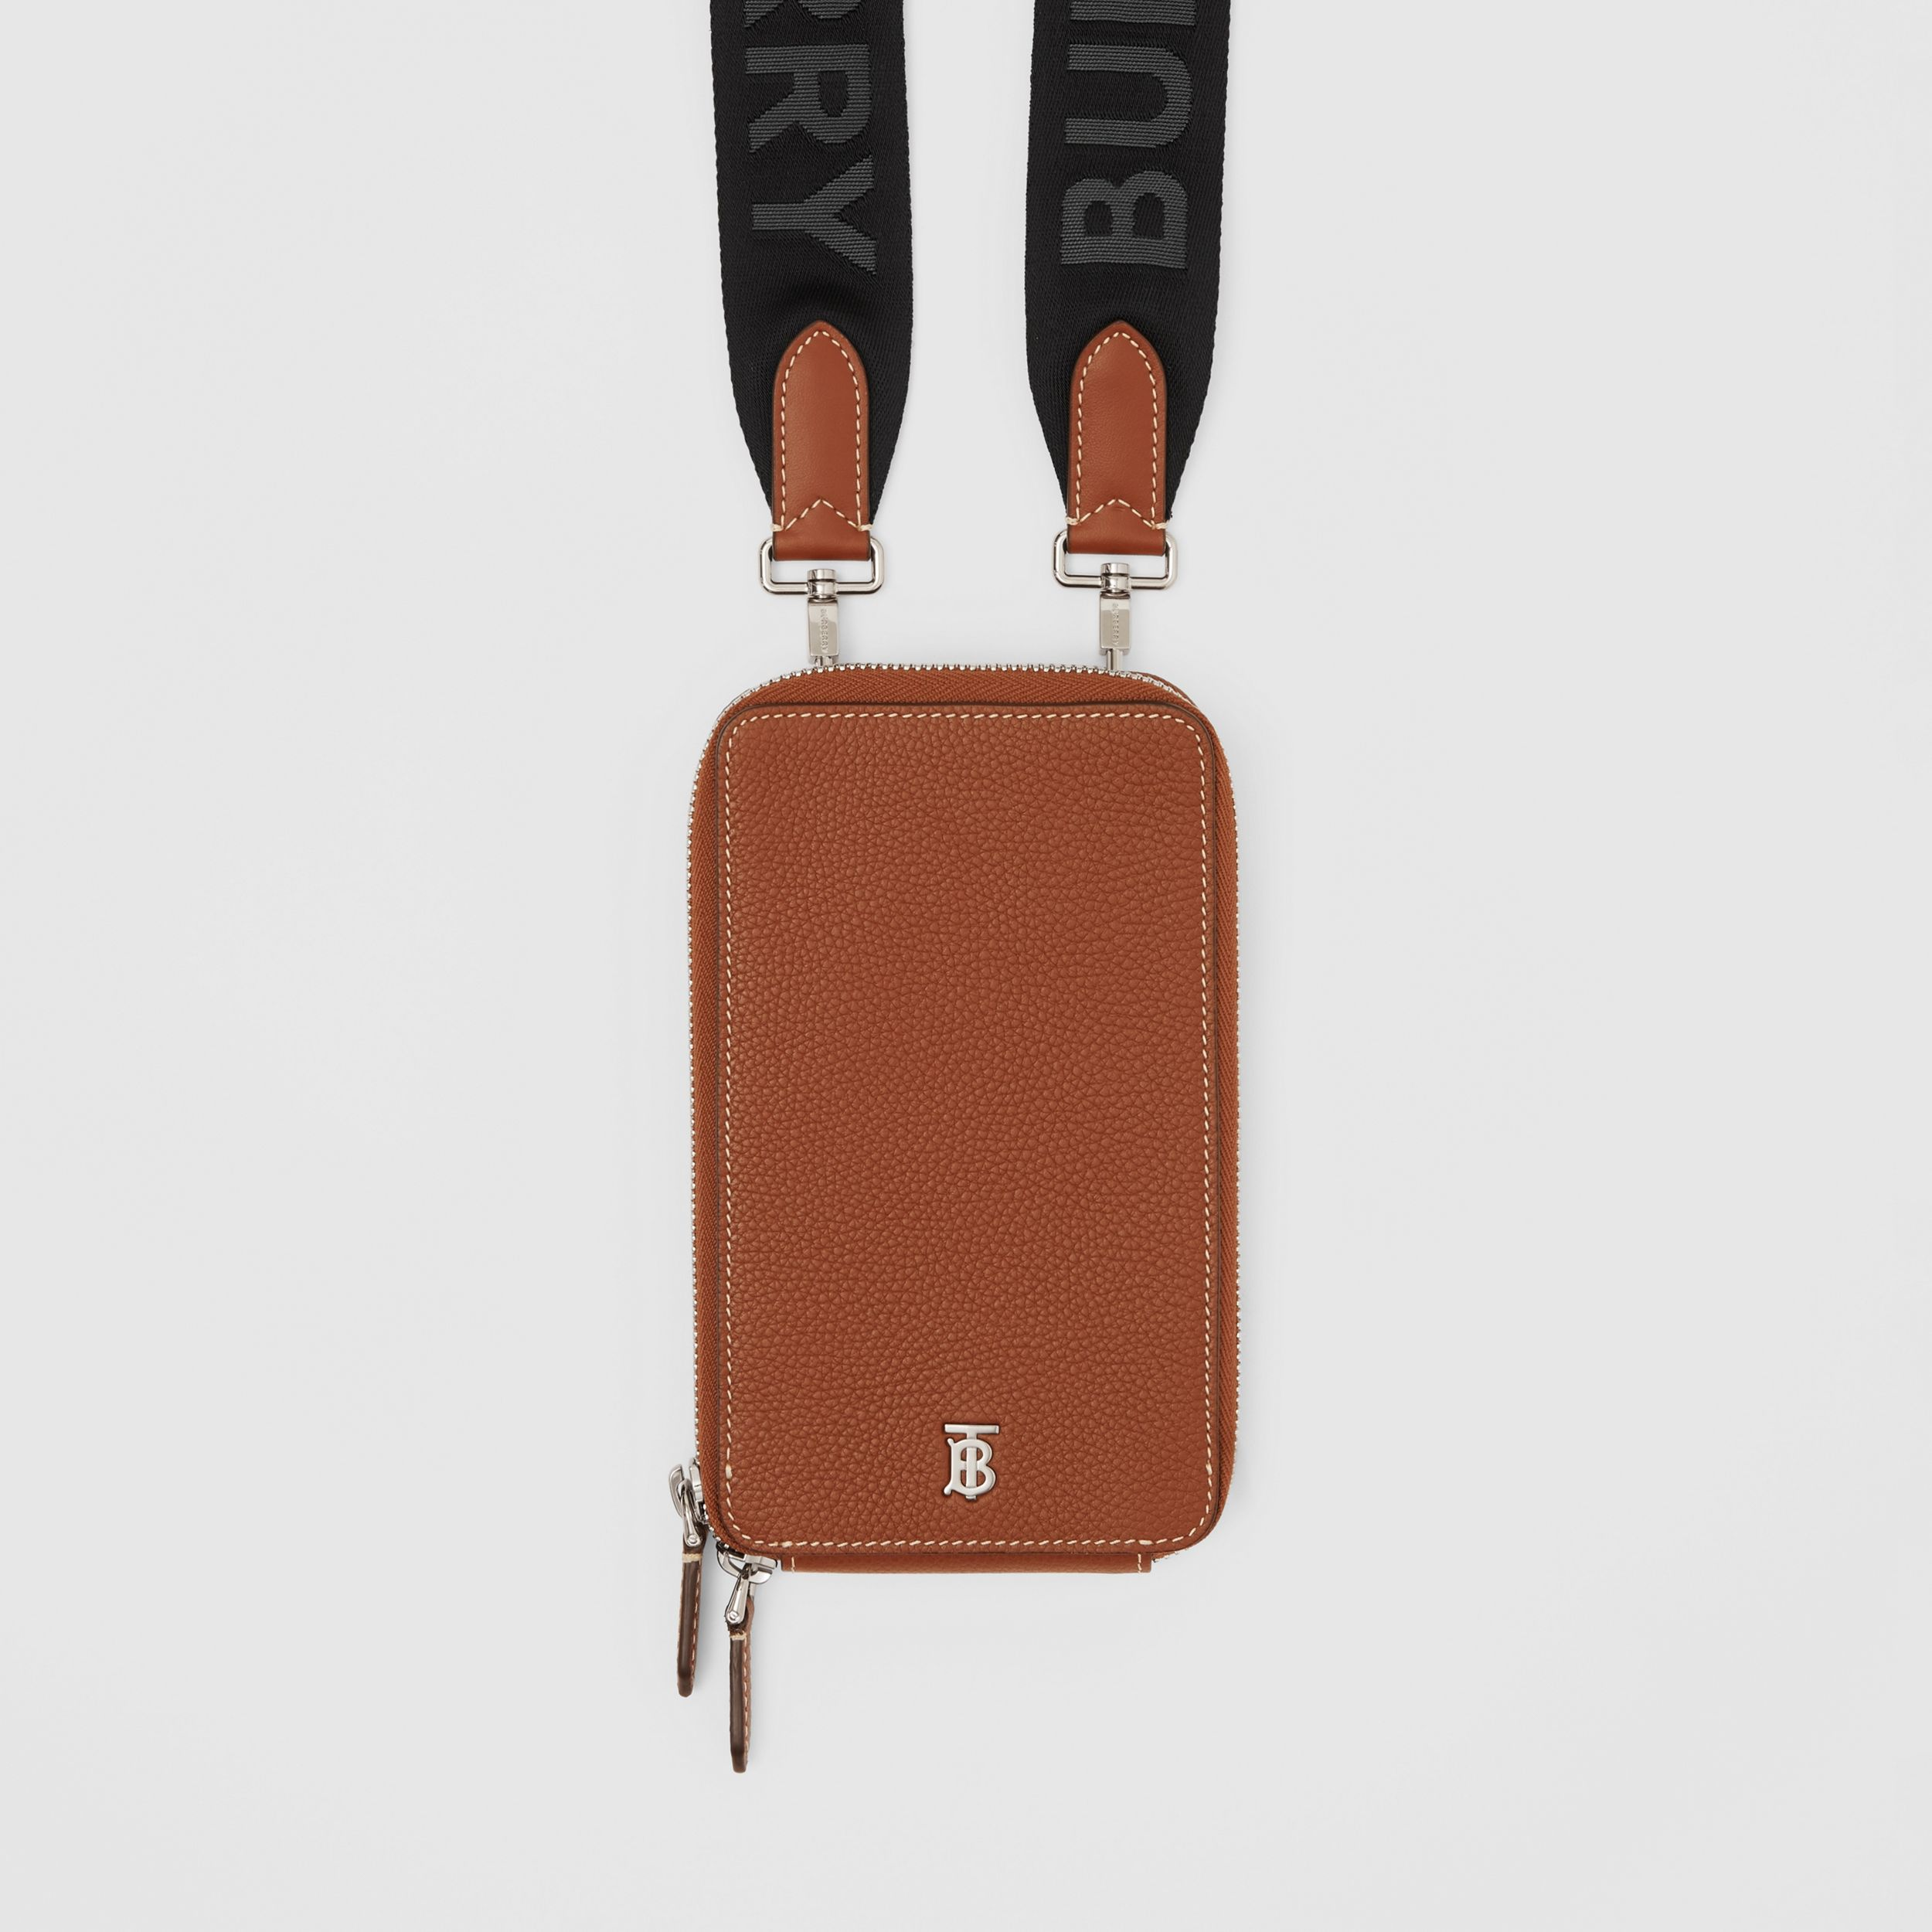 Grainy Leather Phone Case with Detachable Strap in Tan | Burberry - 2